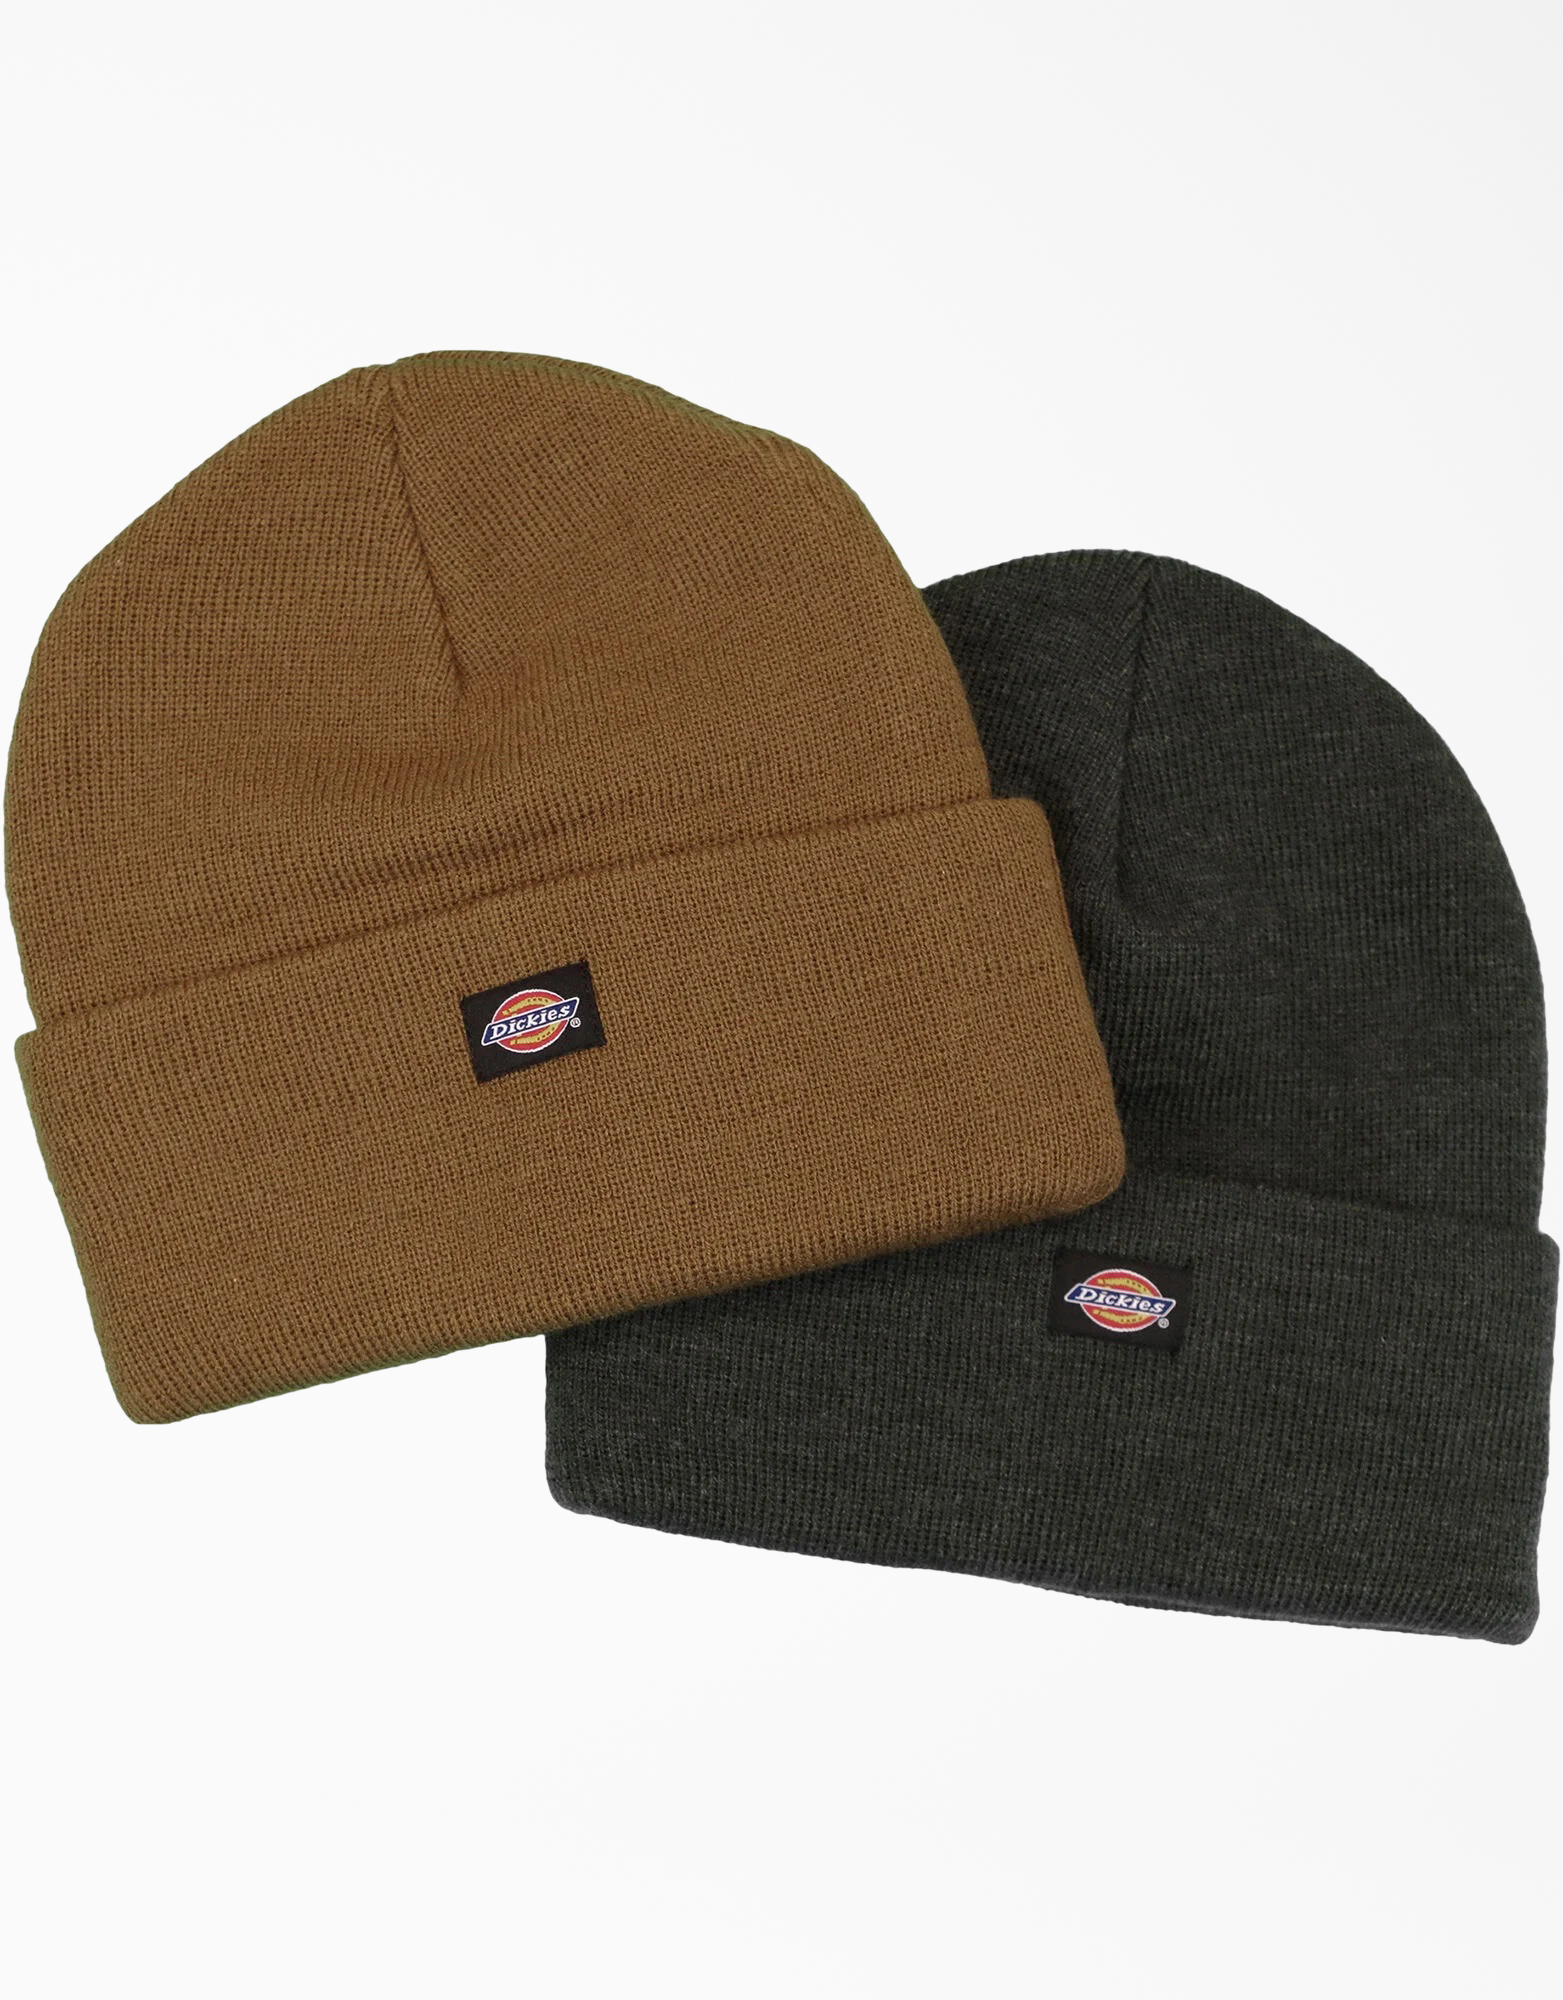 Two Pack Beanie - Brown Duck (BD)